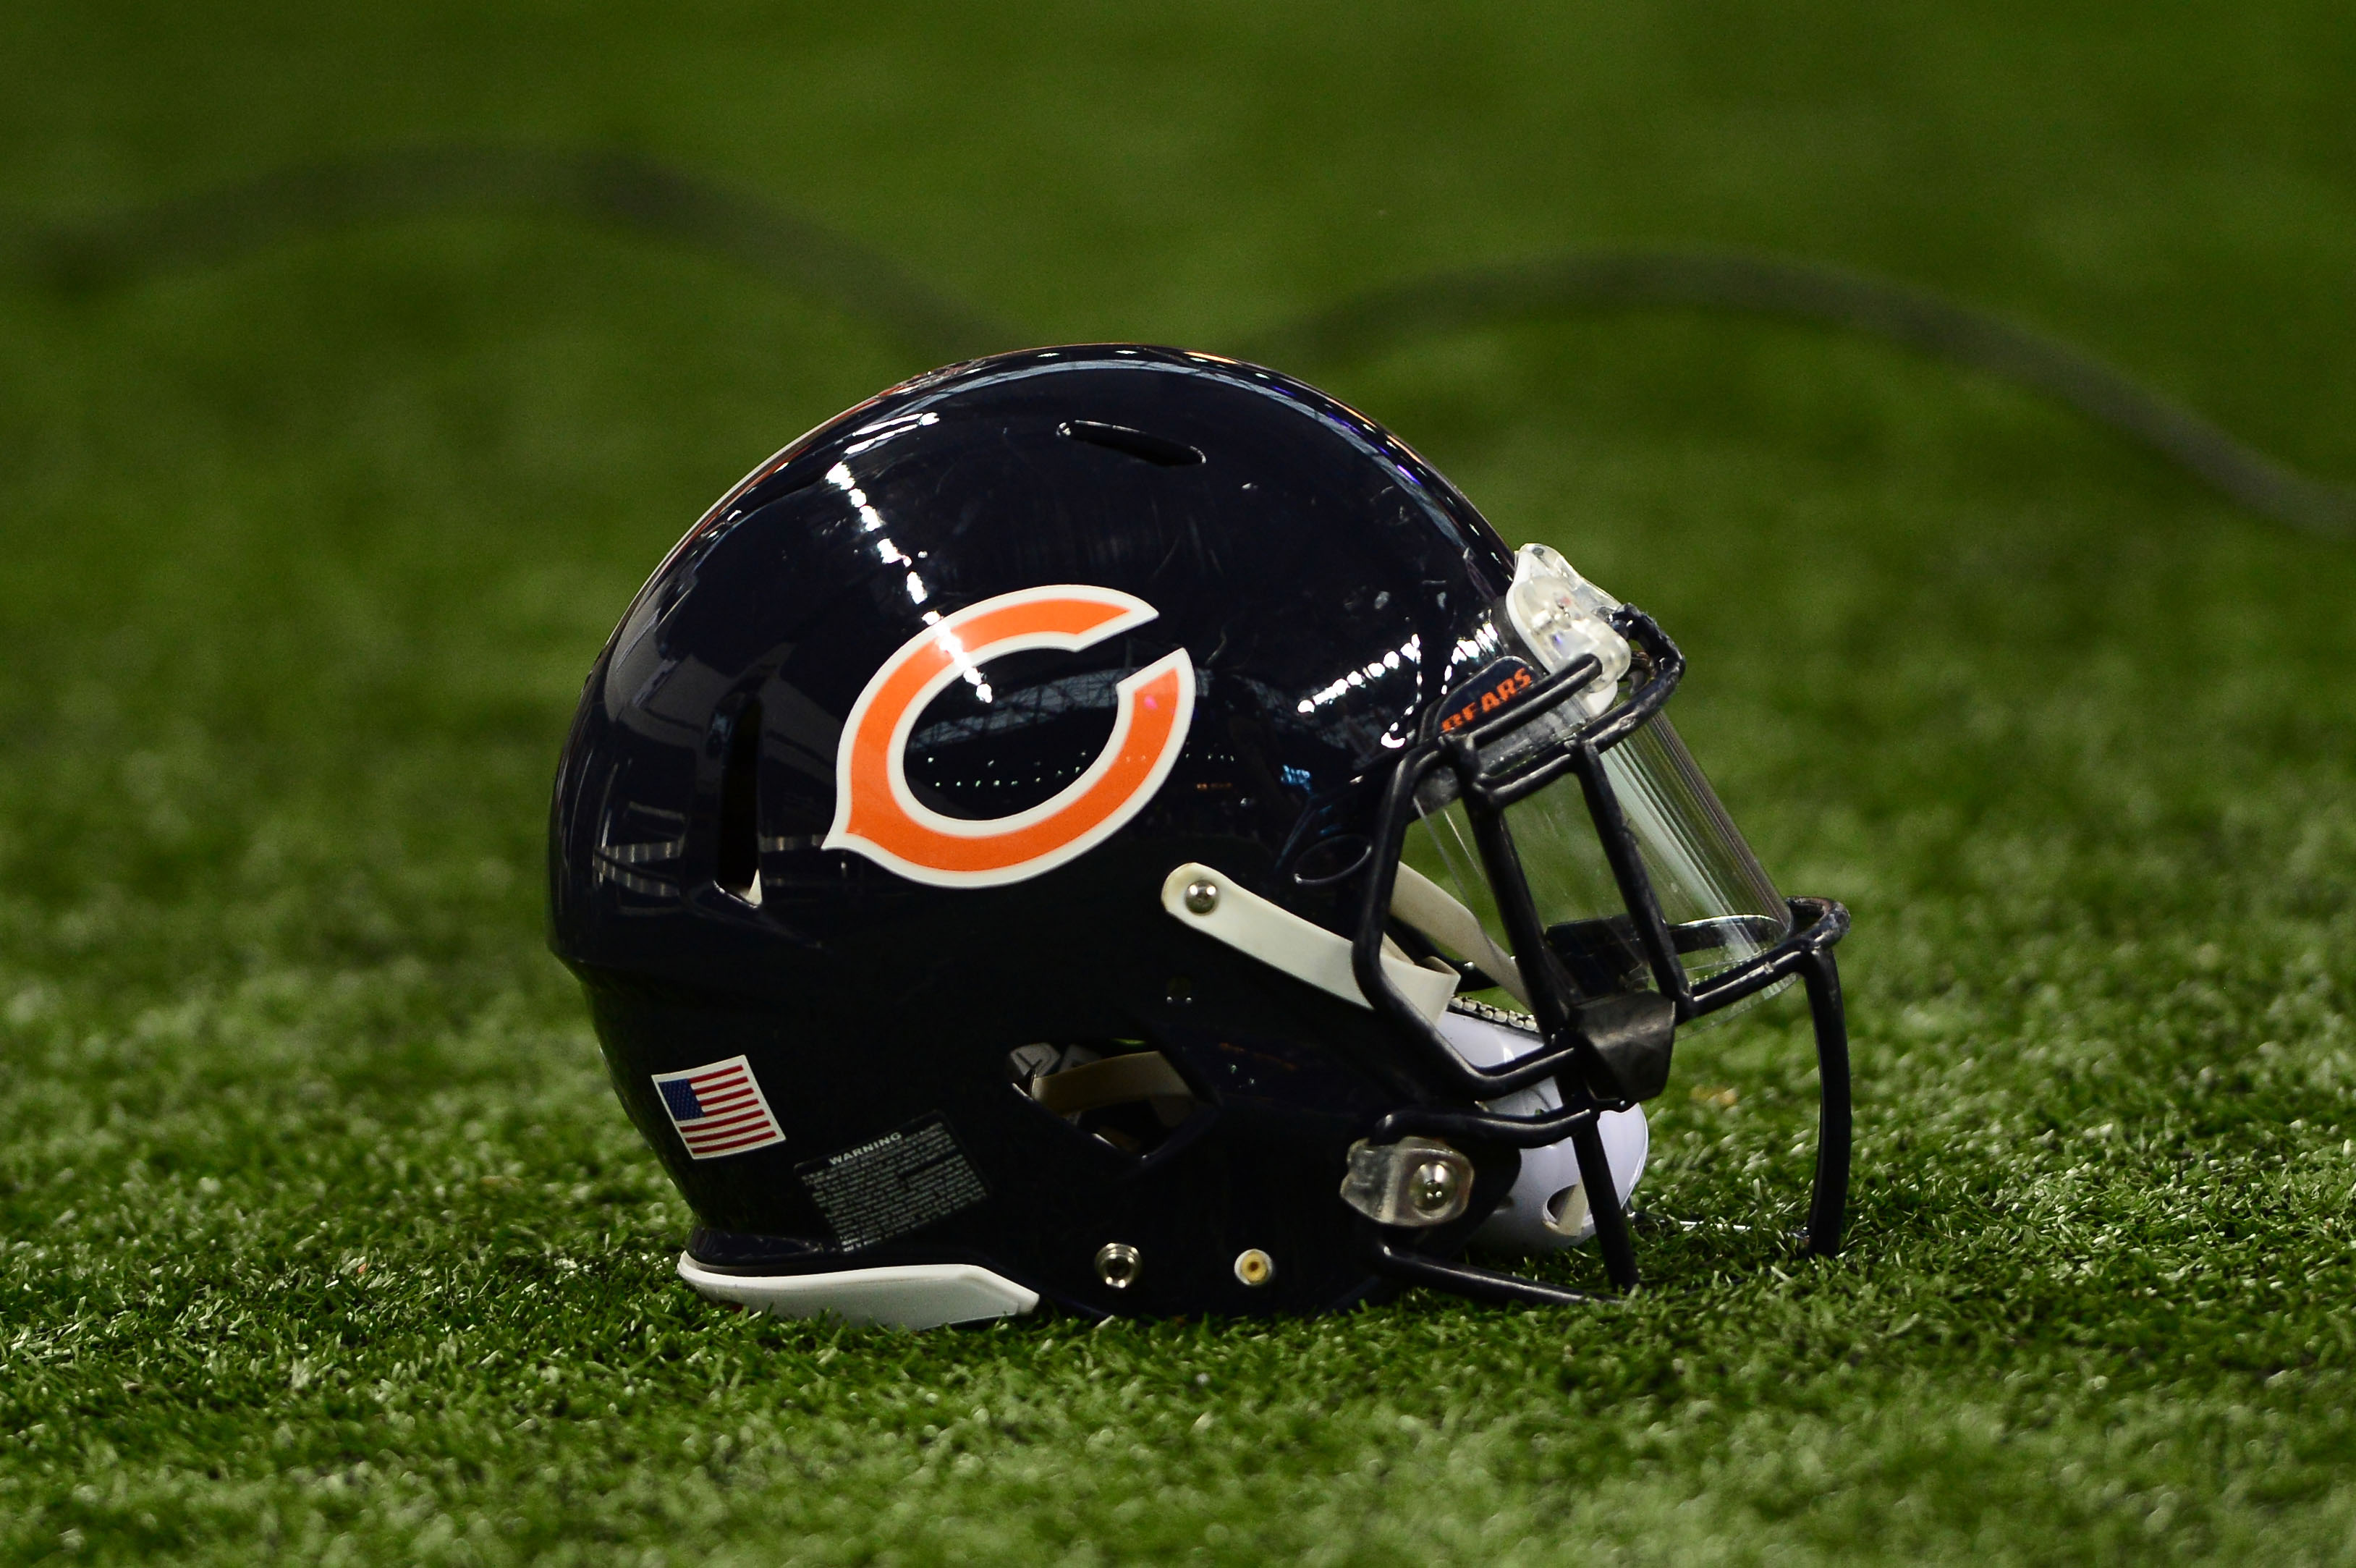 Opinion packers peeing on bears helmet Likely... The